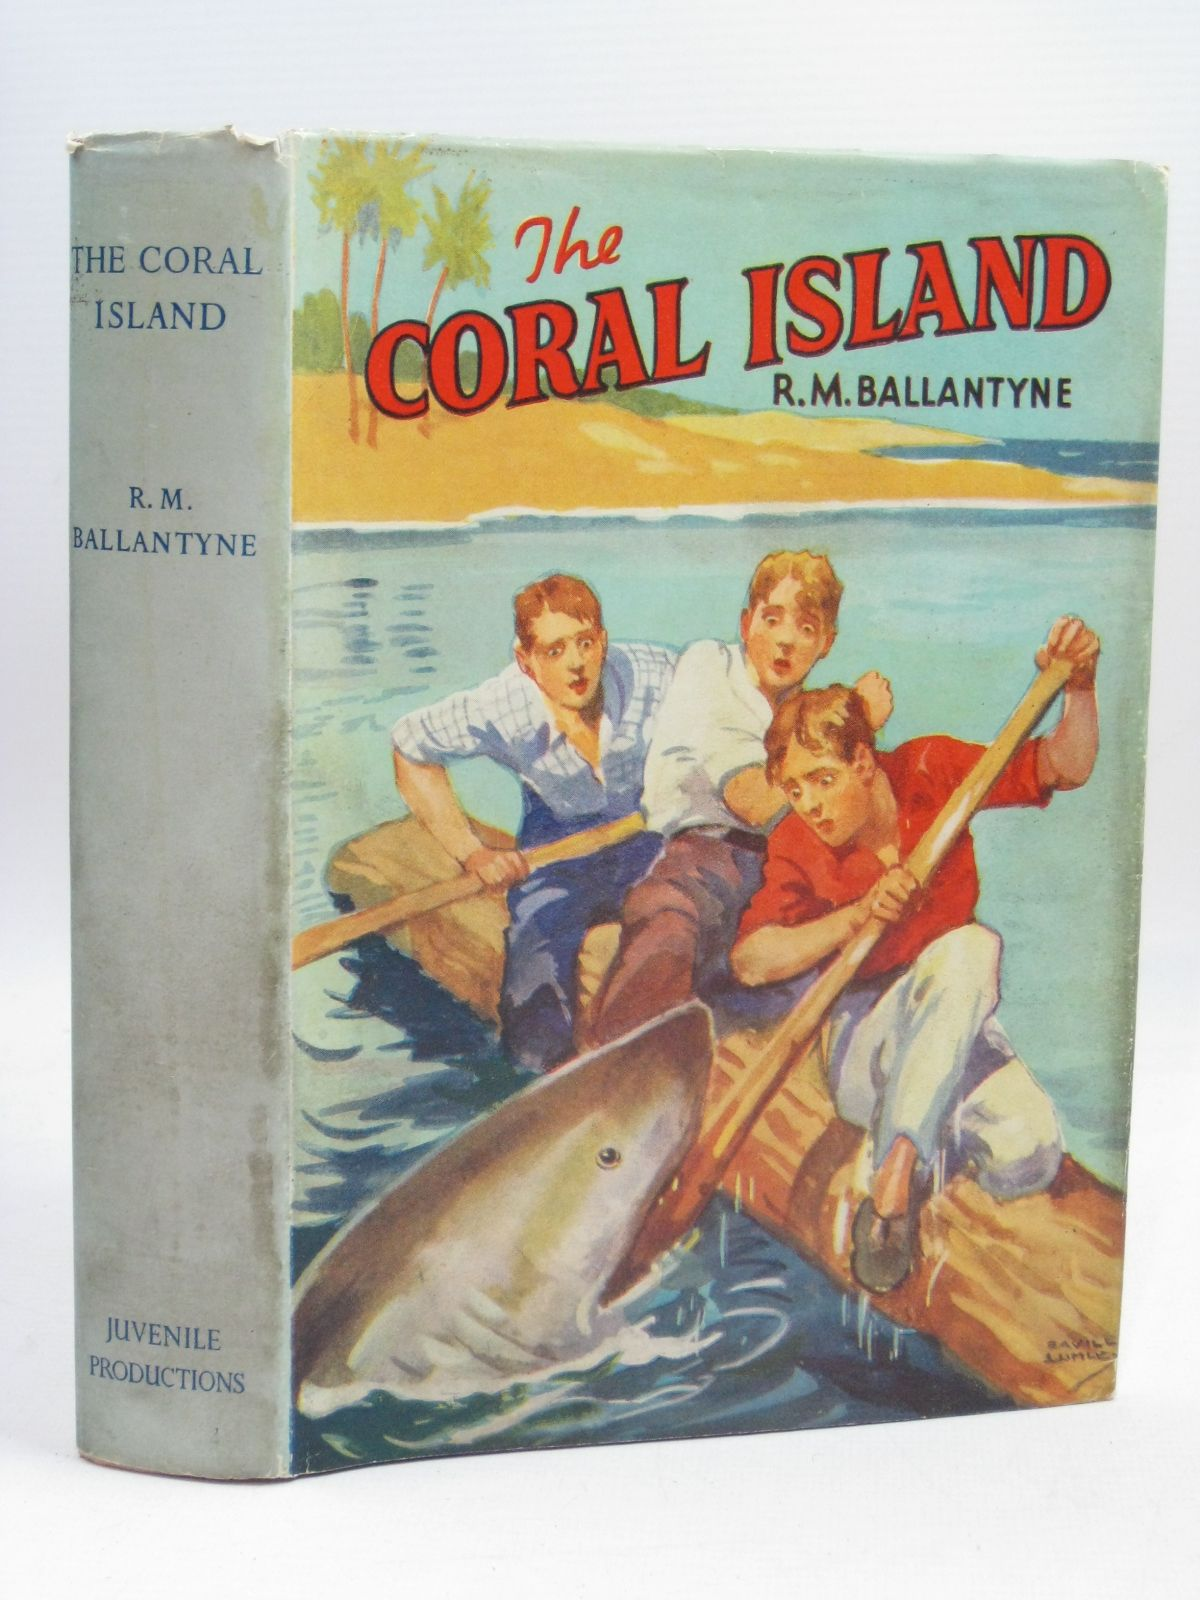 The Coral Island: Book Review